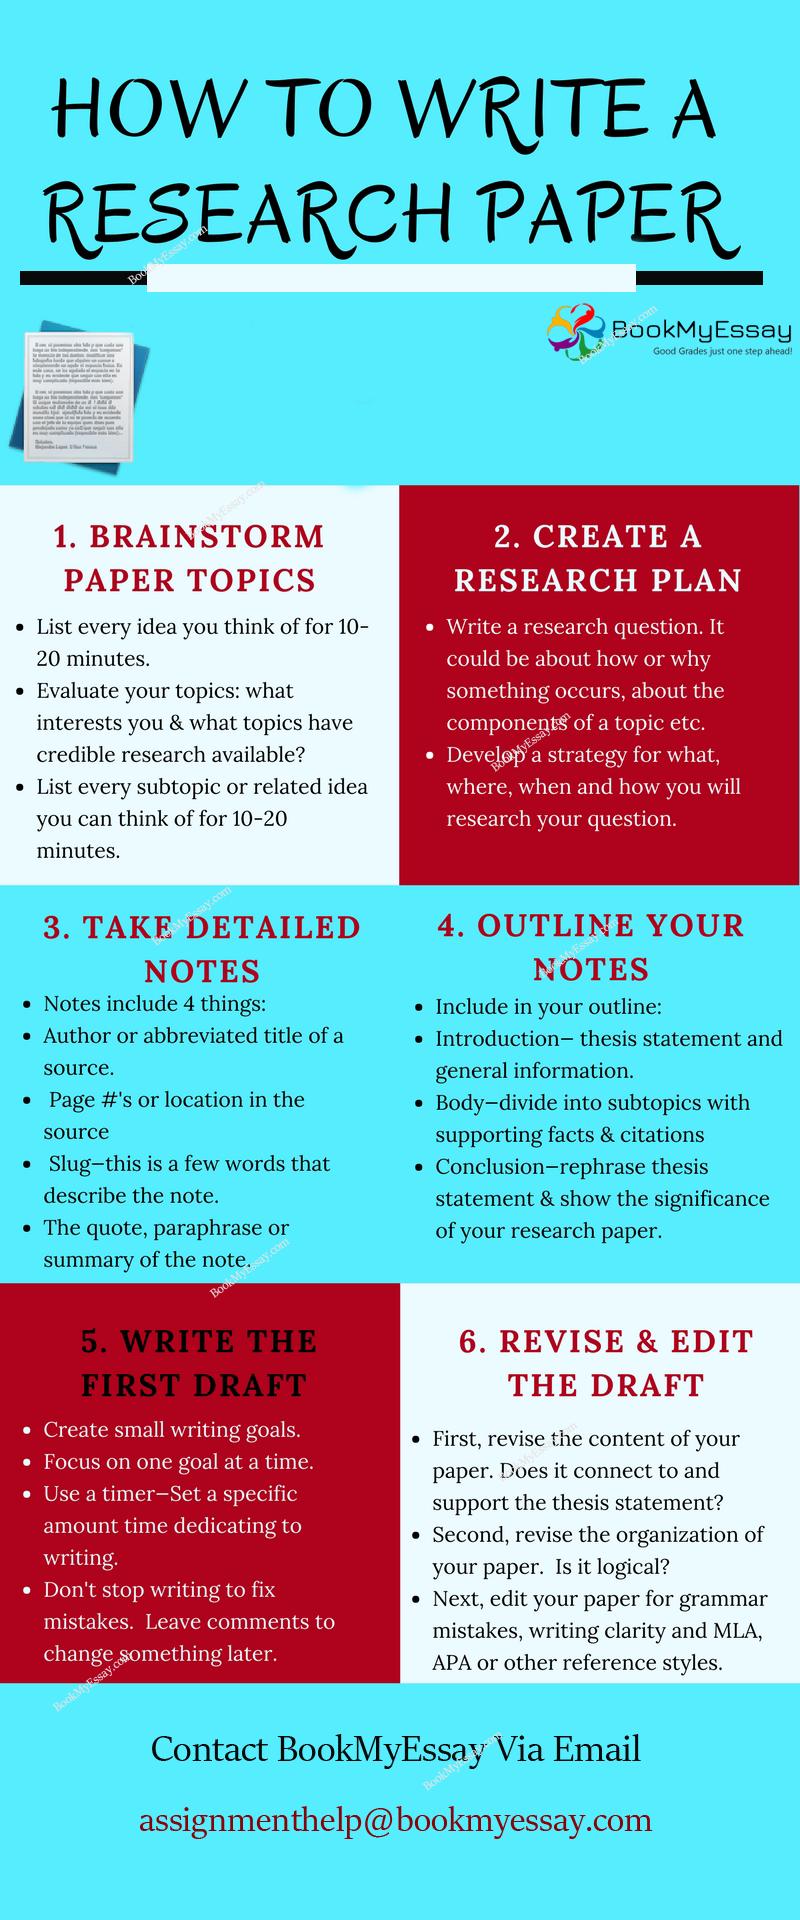 002 Researchs Writing Service Outstanding Research Papers Paper Services In Chennai Mumbai College Reviews Full